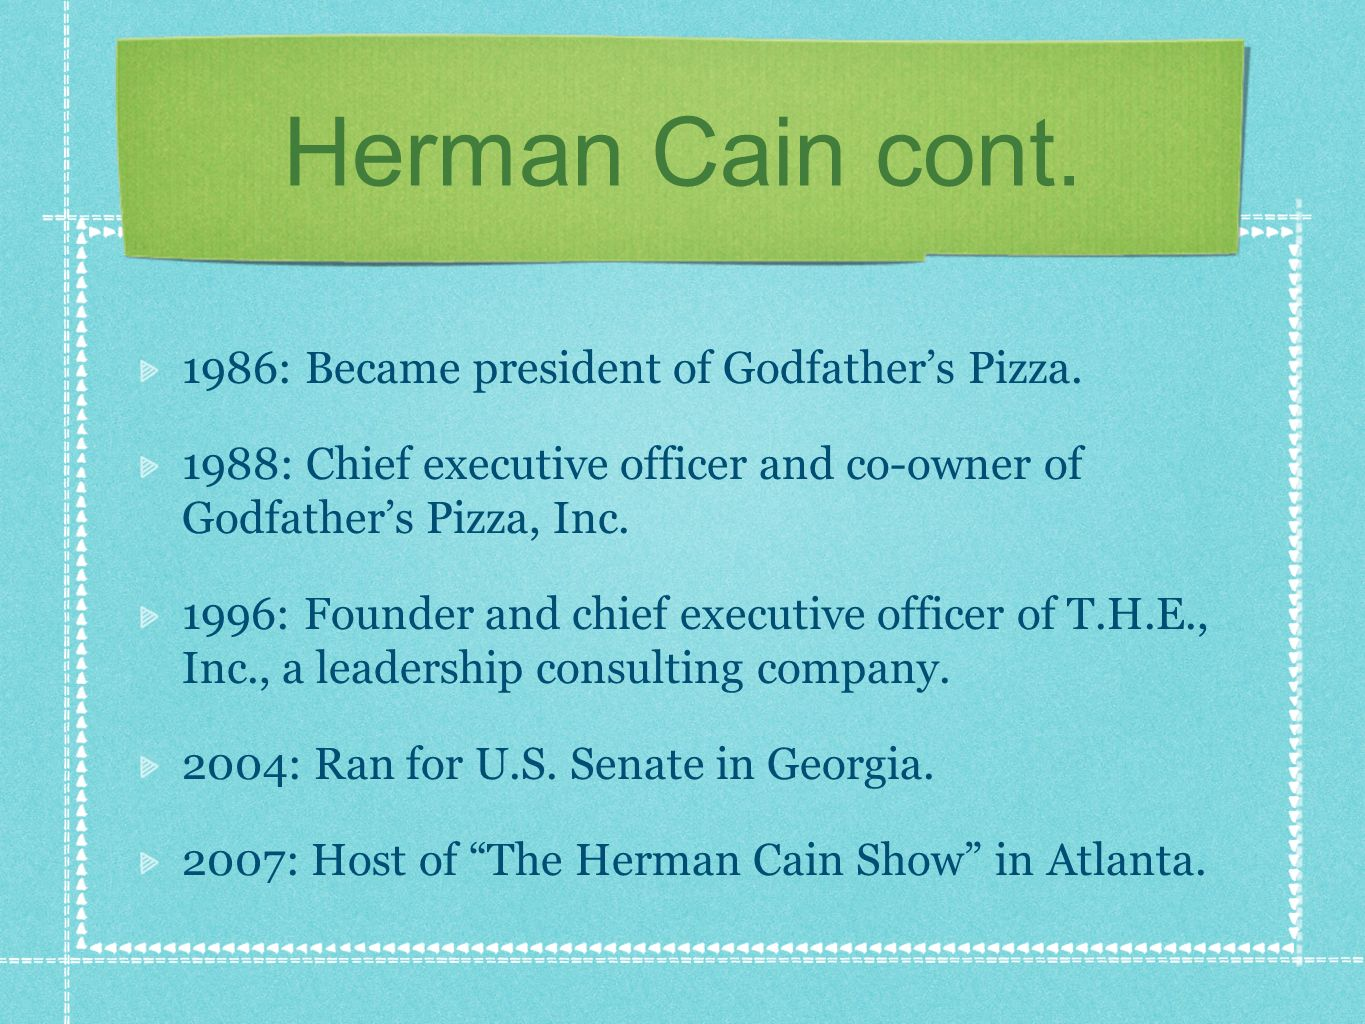 Herman Cain cont. 1986: Became president of Godfathers Pizza.